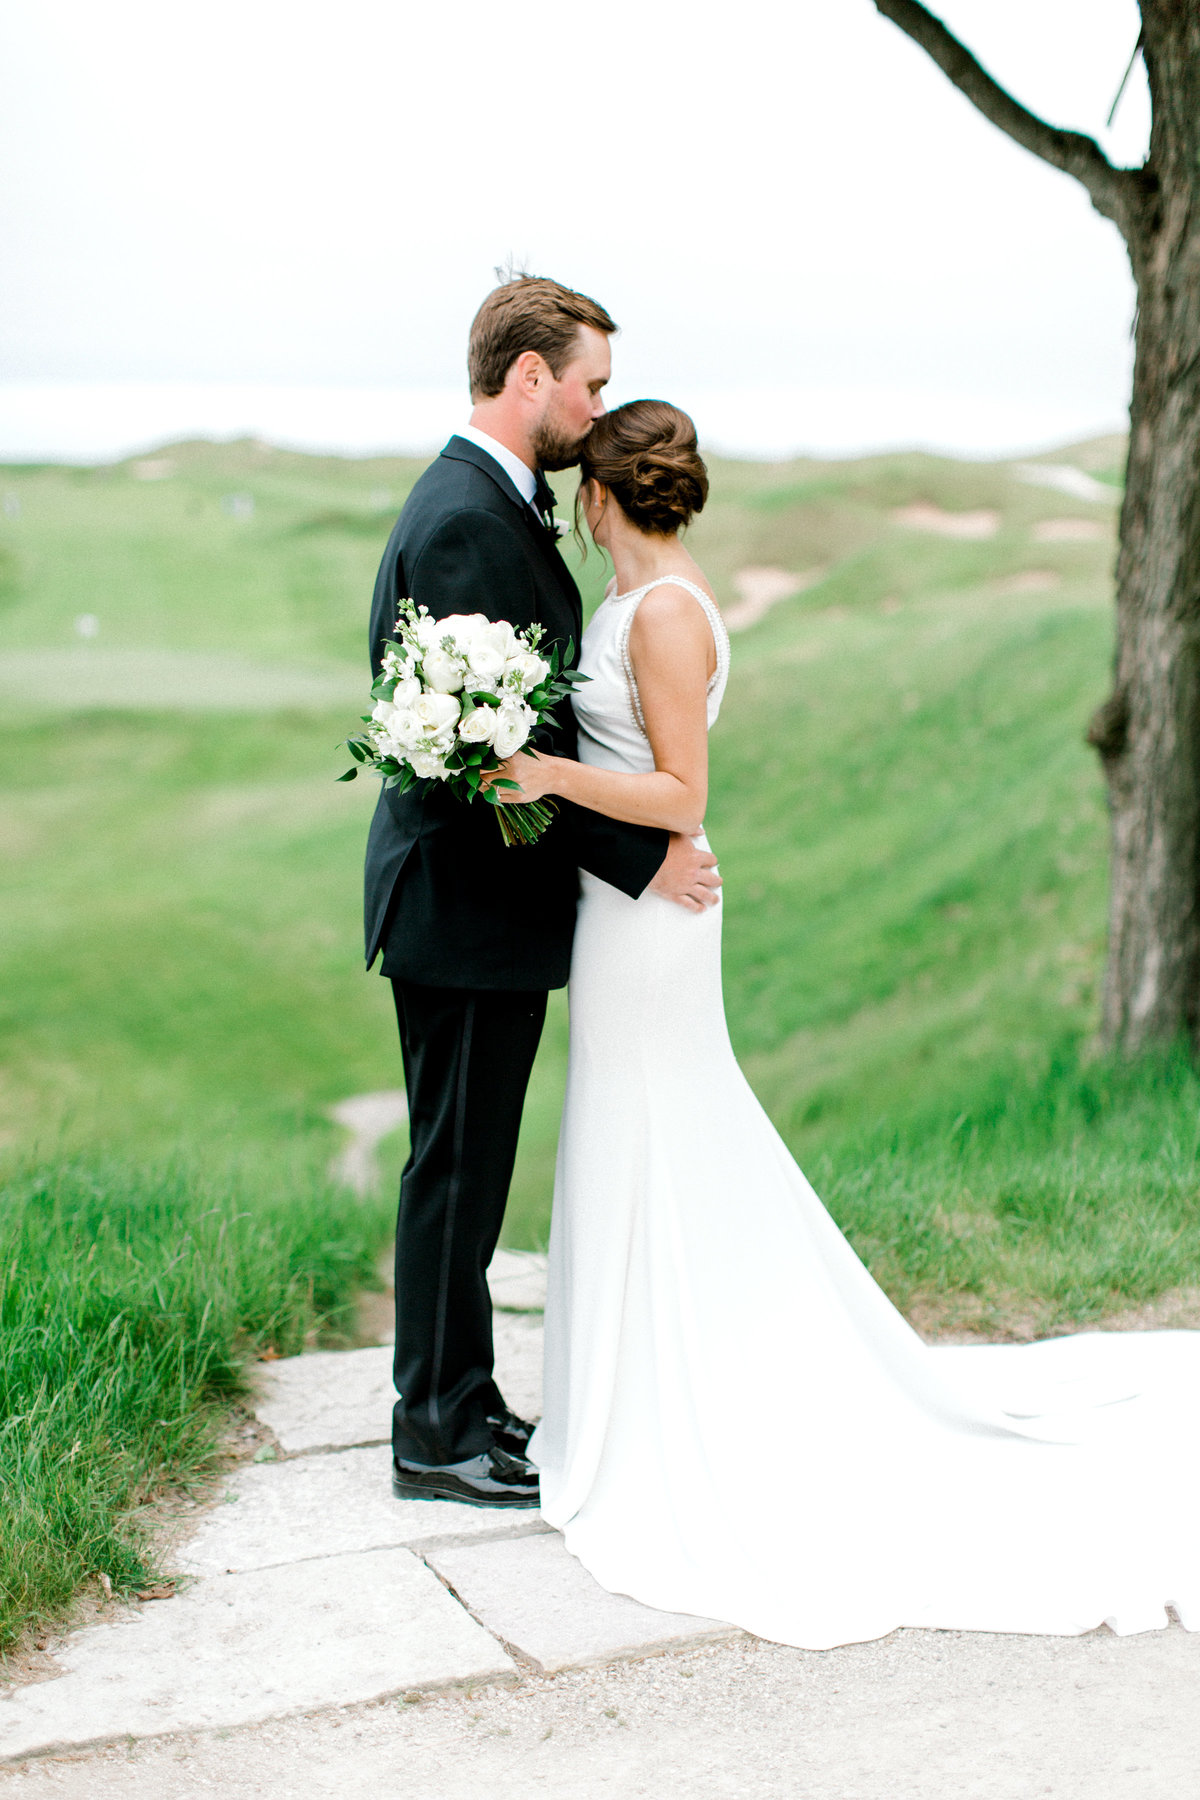 MeganStephen_Wedding_June022018_312